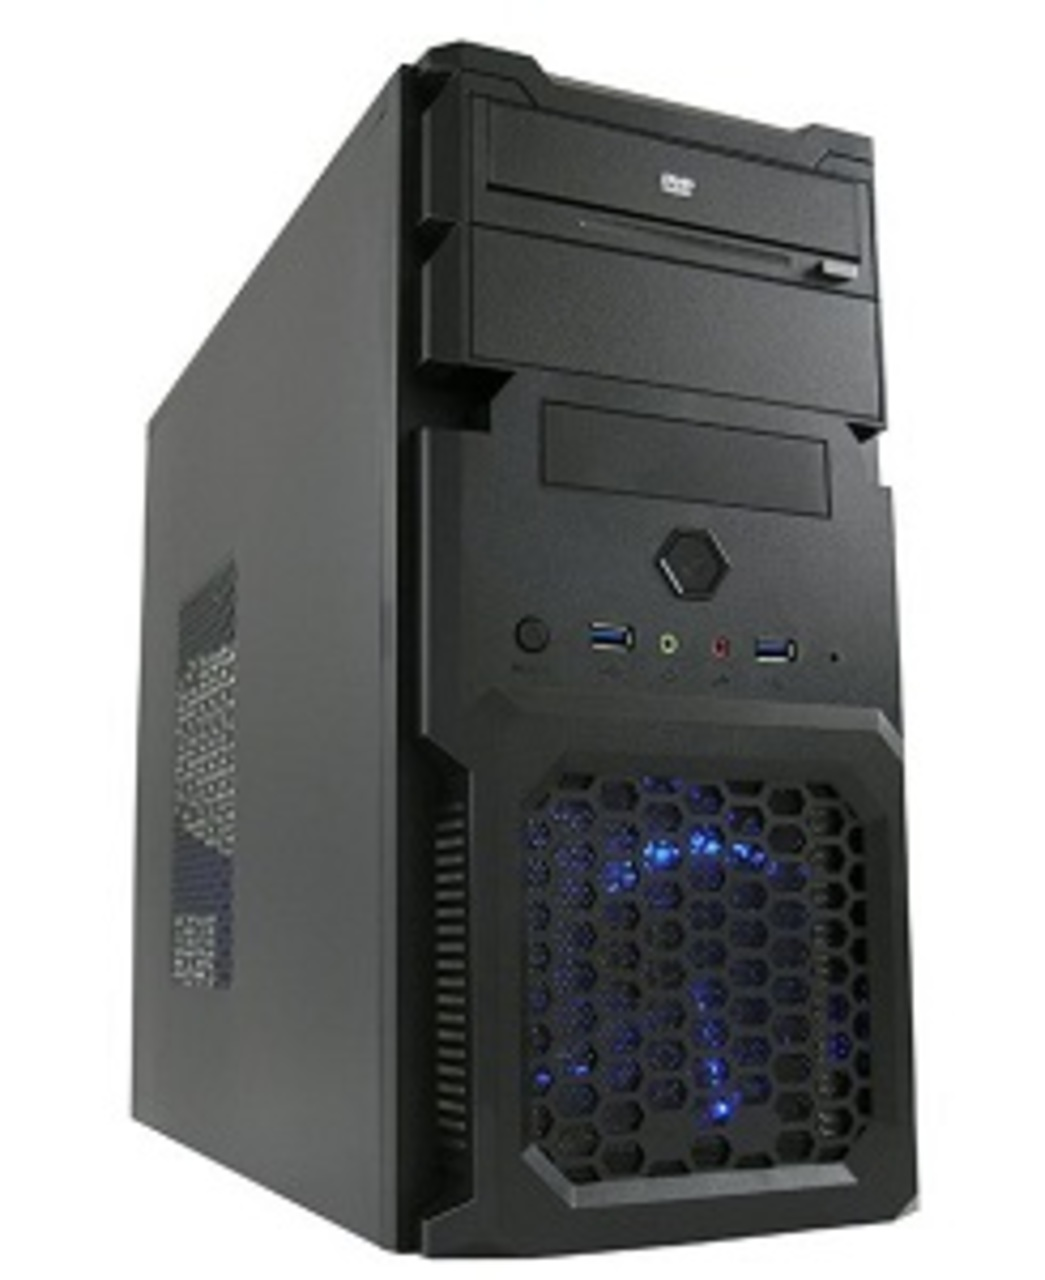 NUOVO PC DANY ALONA INTEL G5400 3700mhz 8GB RAM  SSD240GB  W10